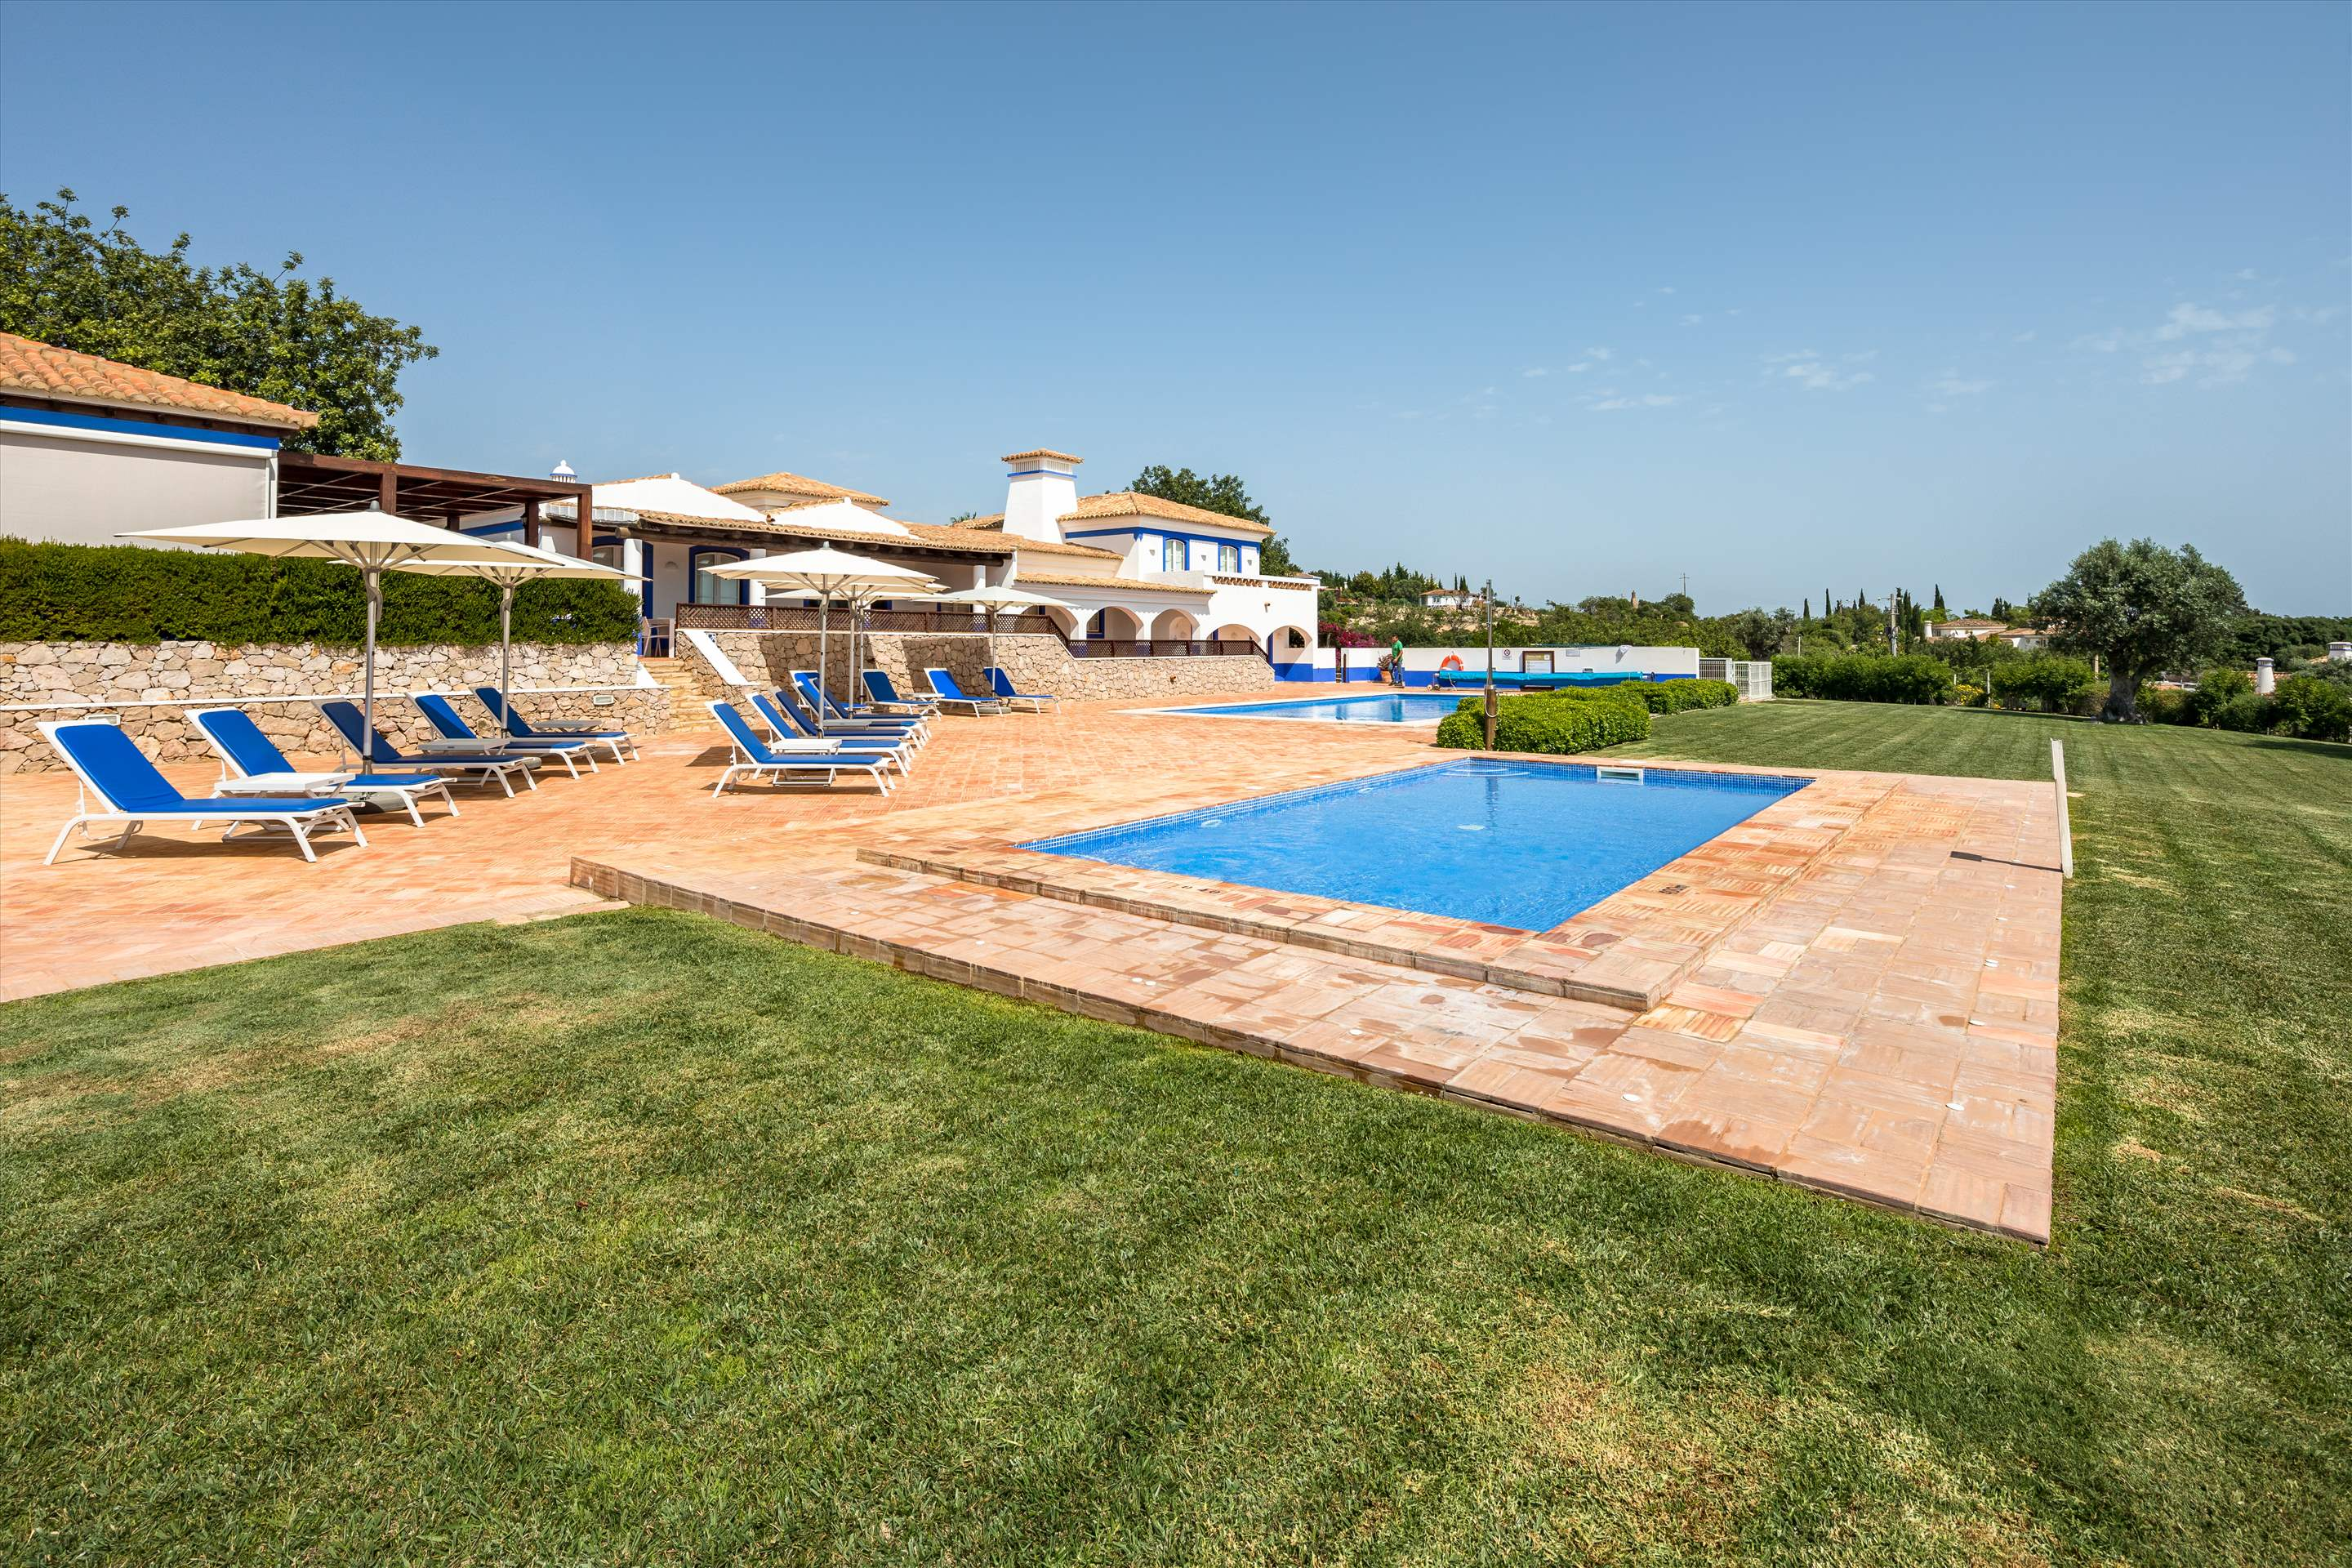 Casa Cahombo, 5 bedroom rate for 7-10 persons, 5 bedroom villa in Vilamoura Area, Algarve